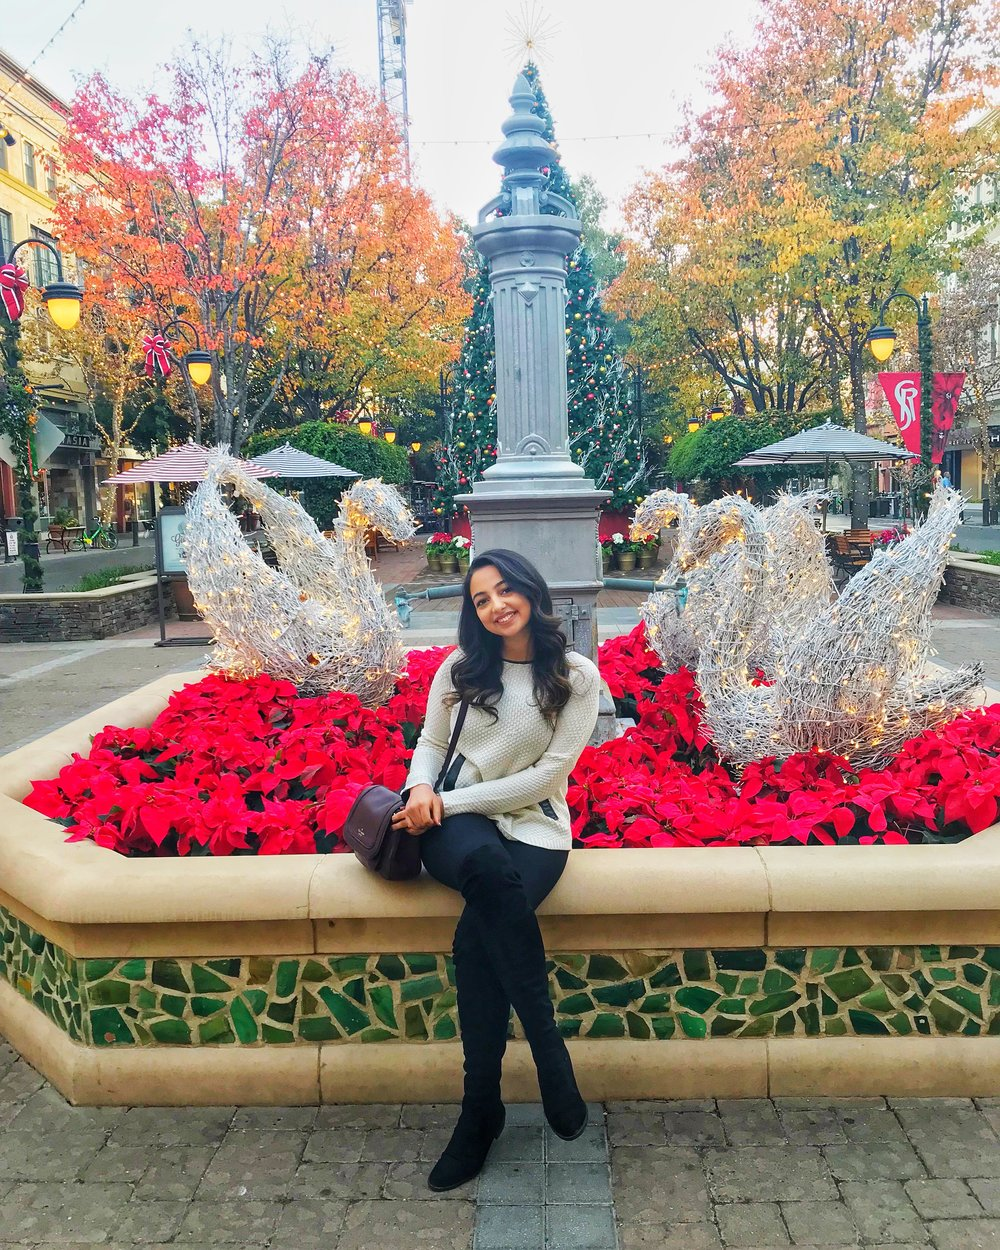 - Hi and Welcome to my Blog! I'm a 22 year old UC Davis Alumni and currently work as a Technical Consultant at Workday! I have been a dancer since I was five years old, and even performed at the 2017 International Indian Film Awards (IIFA) in New York!As a result I am constantly trying to balance both my passions of dance, entertainment and technology! I love motivating other new graduates to find new opportunities in the workforce or related to their passions so that they can achieve their goals and do all they set their mind to! Feel free to reach out with any advice, questions, or comments about anything related to dance, entertainment, fashion, or technology, I would love to hear from you!  Love, Srishti